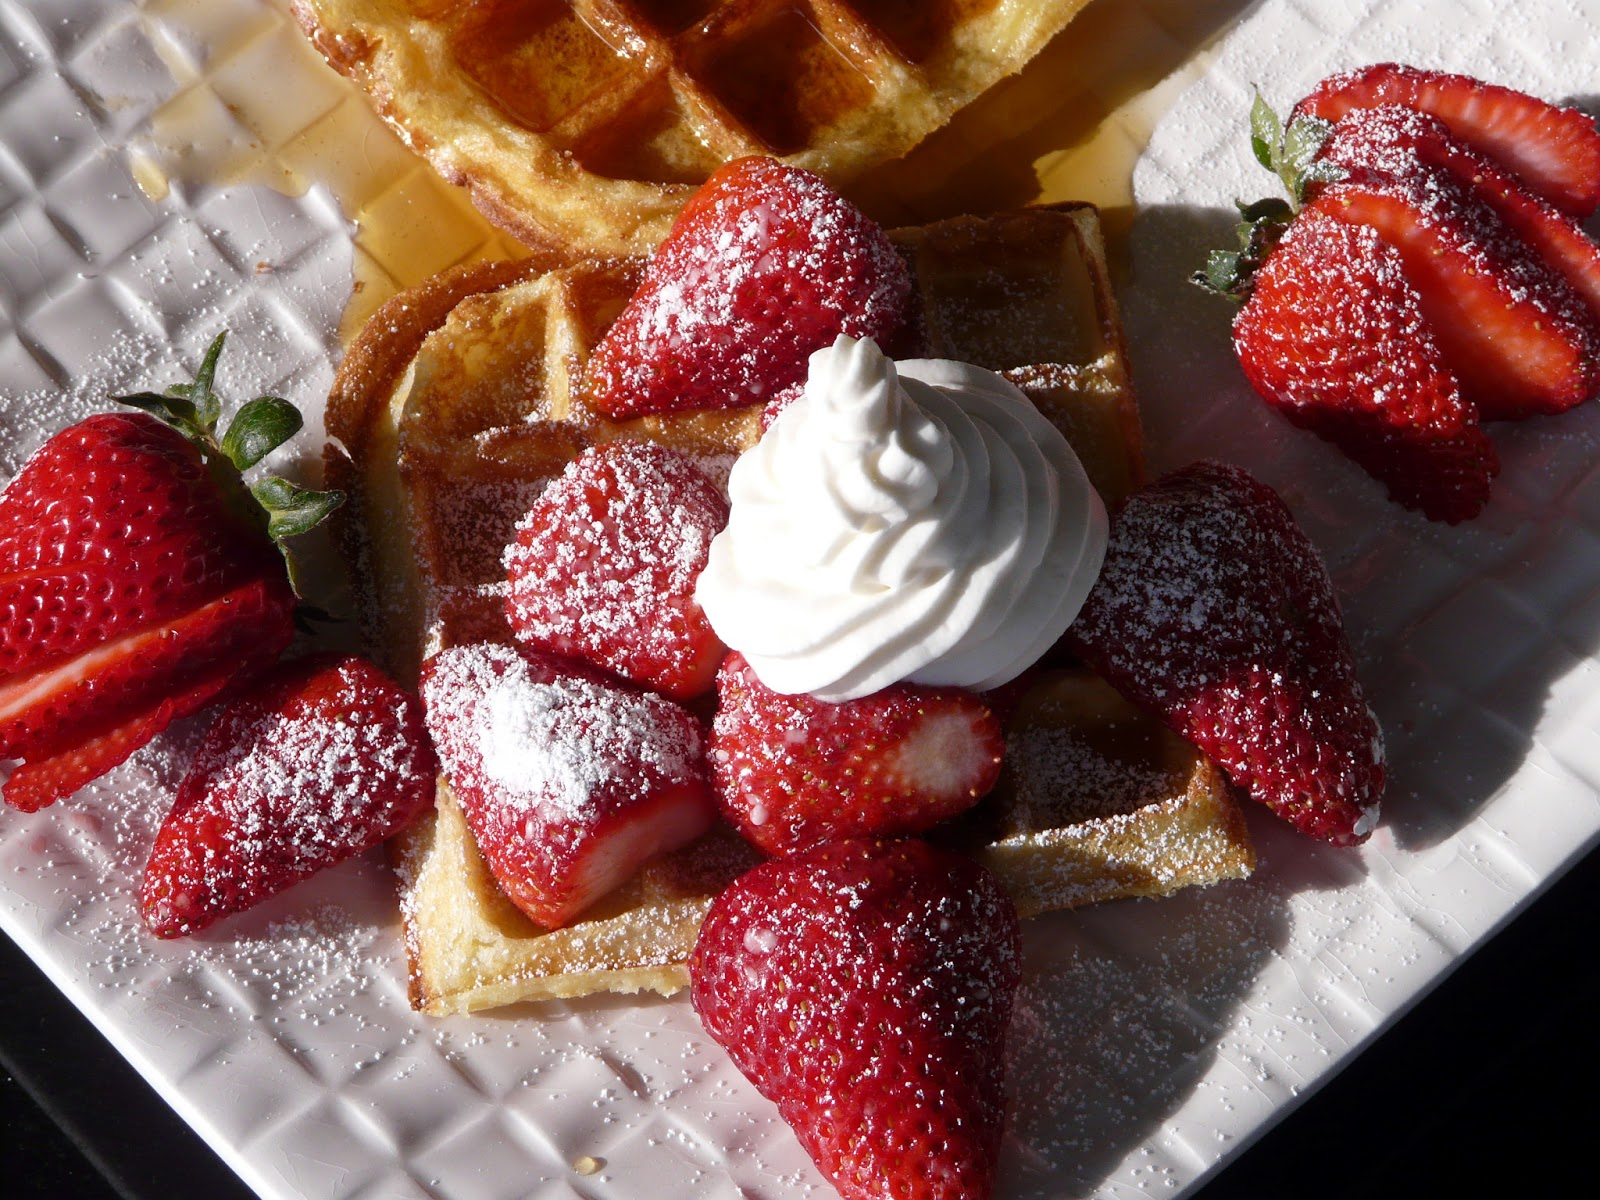 Thibeault's Table: Waffles Two Ways - New Waffle Maker